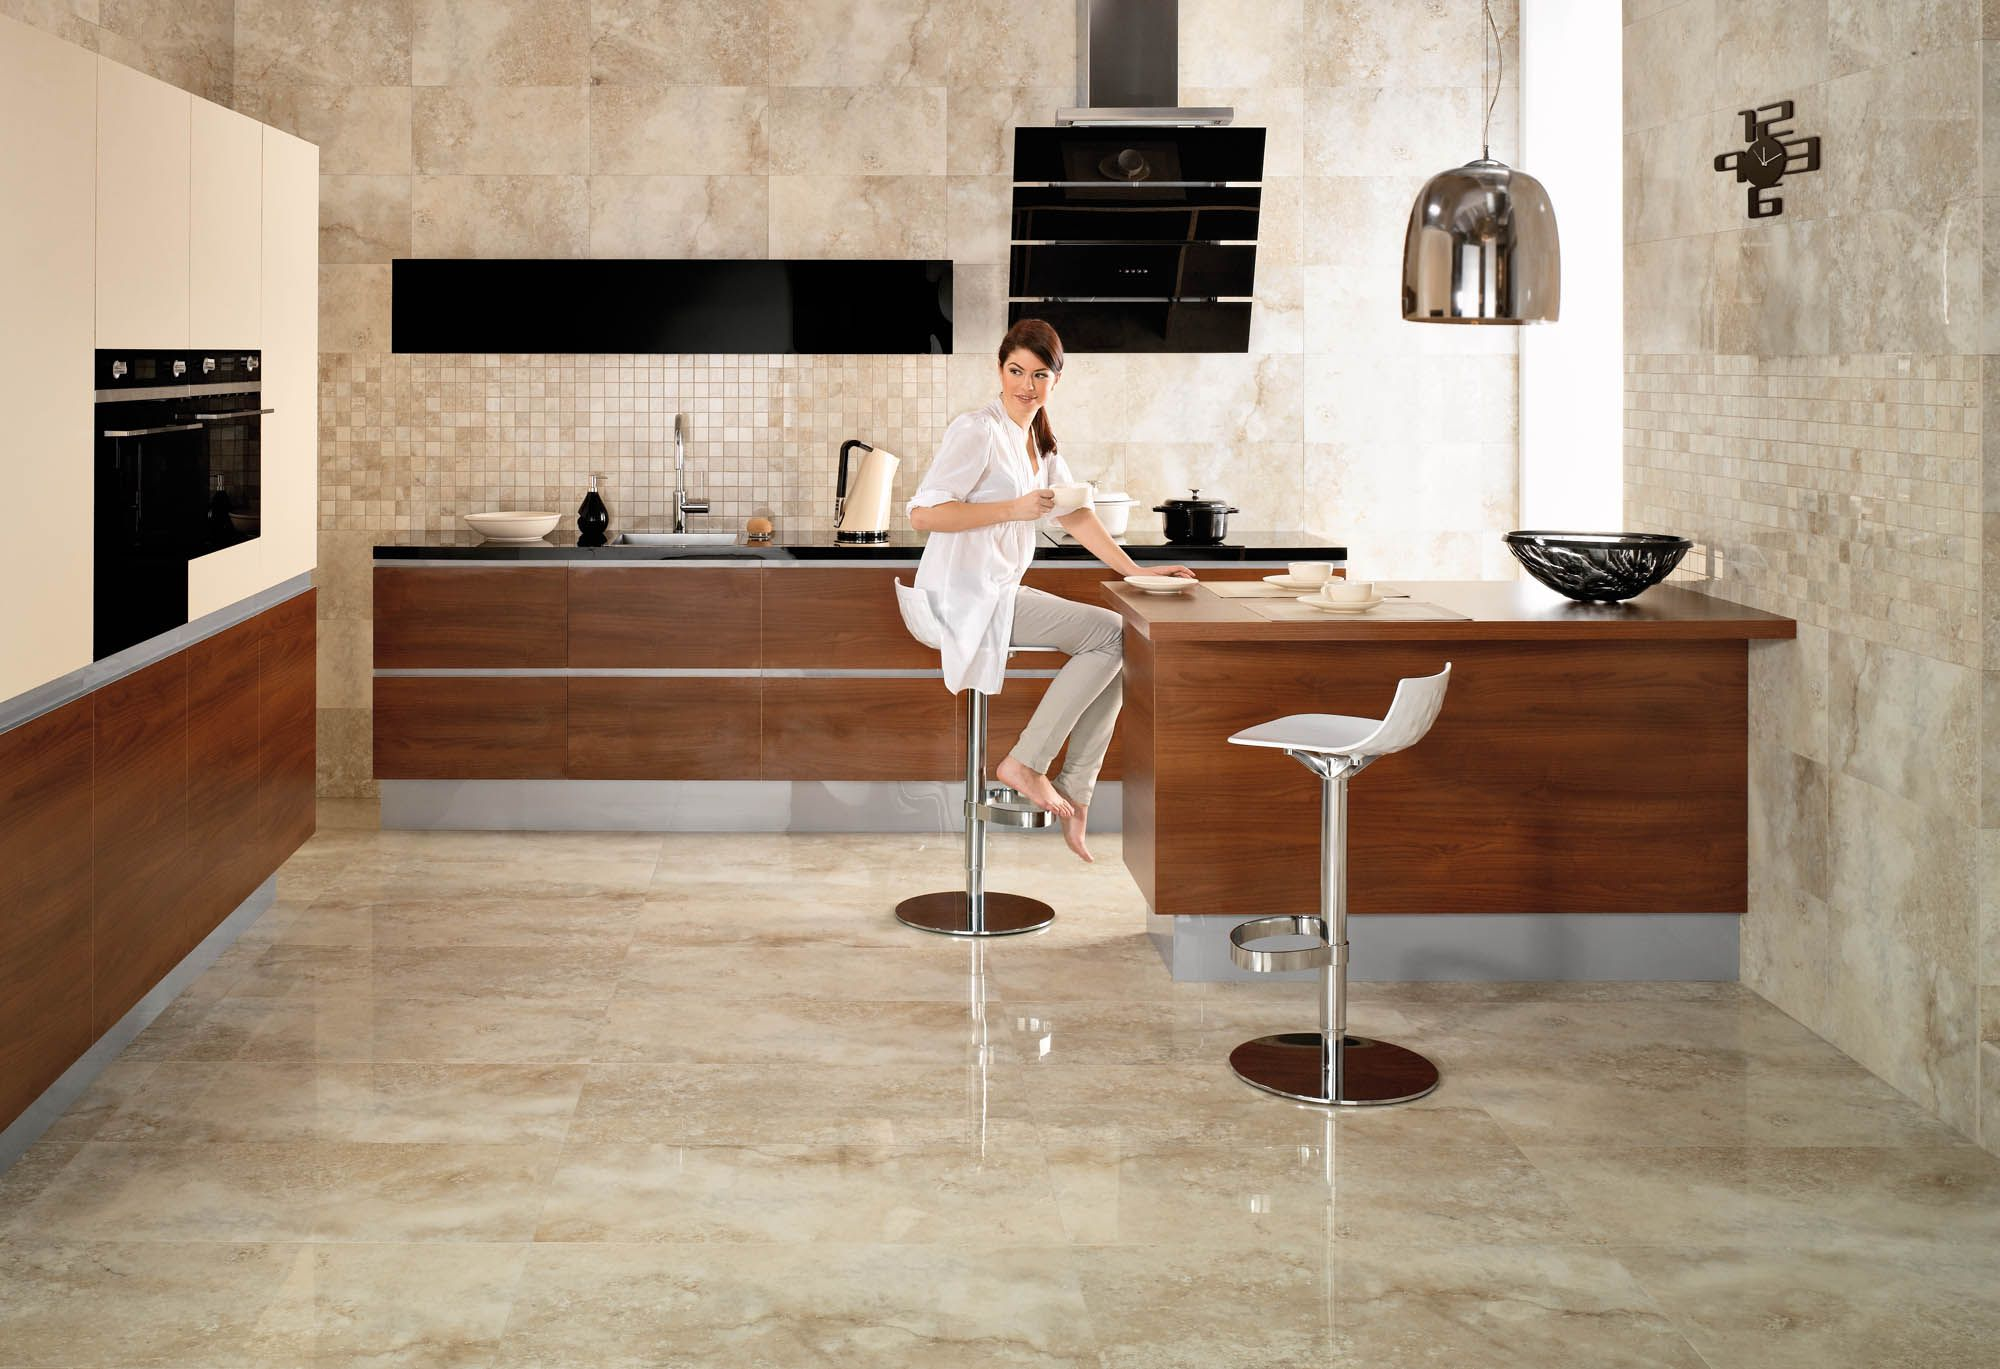 modern kitchen floor tile designs roselawnlutheran - Modern Kitchen Flooring Ideas